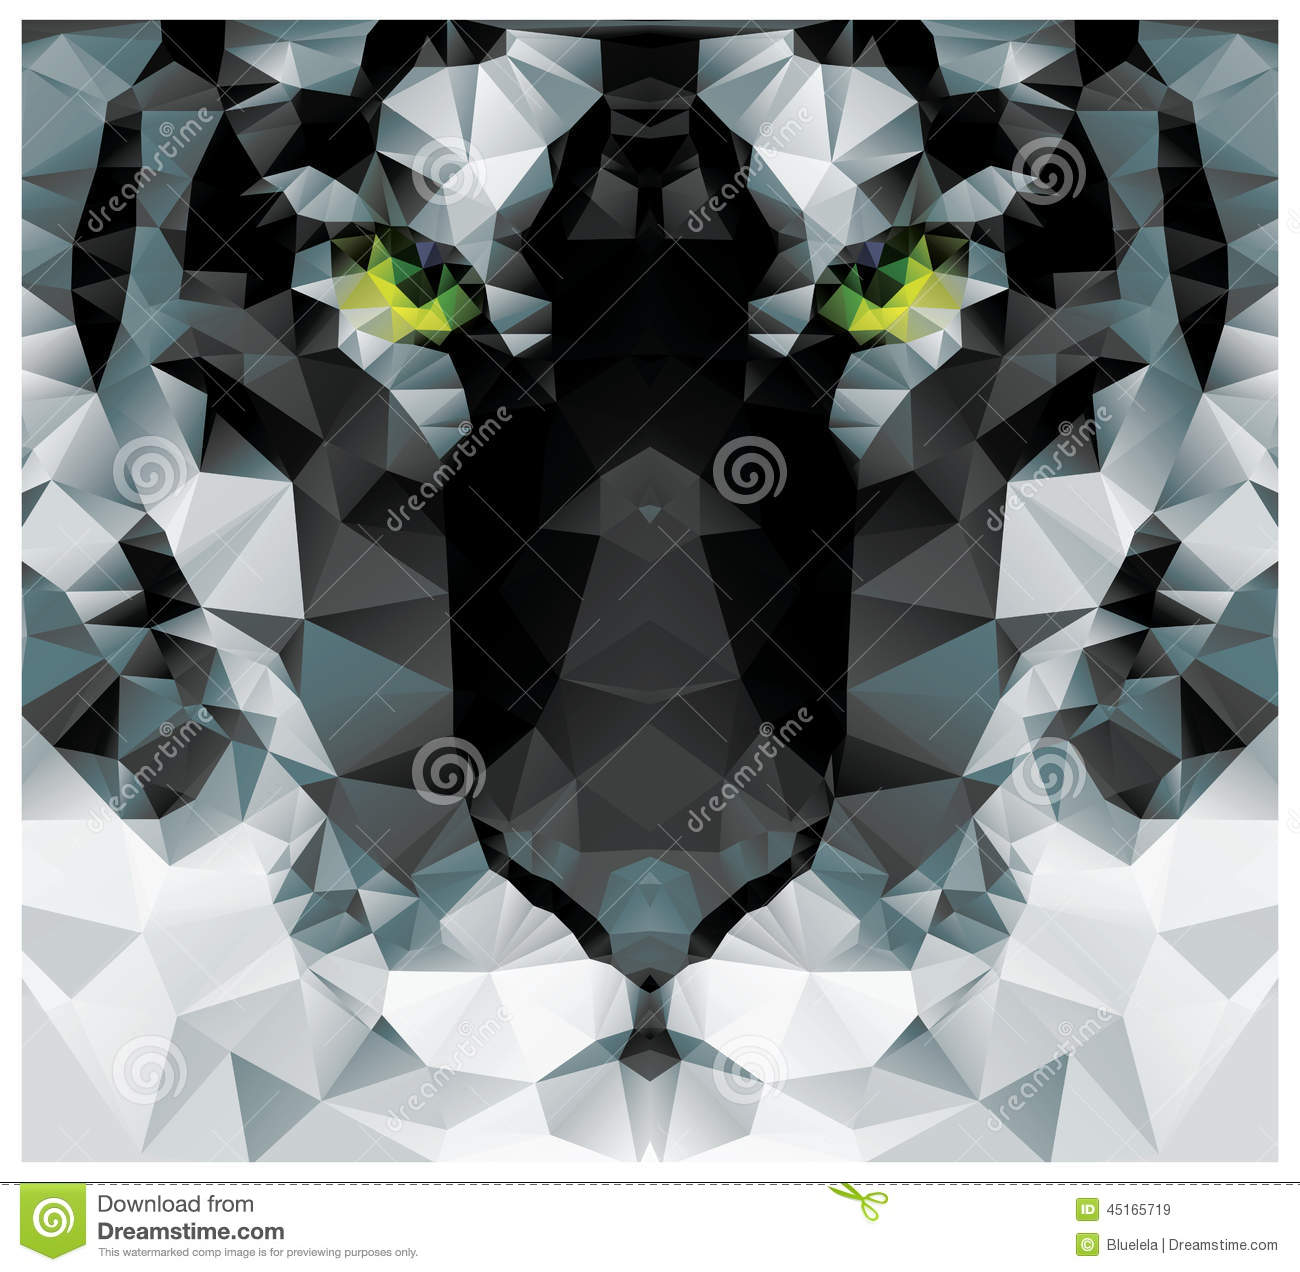 Tiger head triangular icon geometric trendy stock vector image - Geometric Polygon White Tiger Head Triangle Pattern Design Royalty Free Stock Images